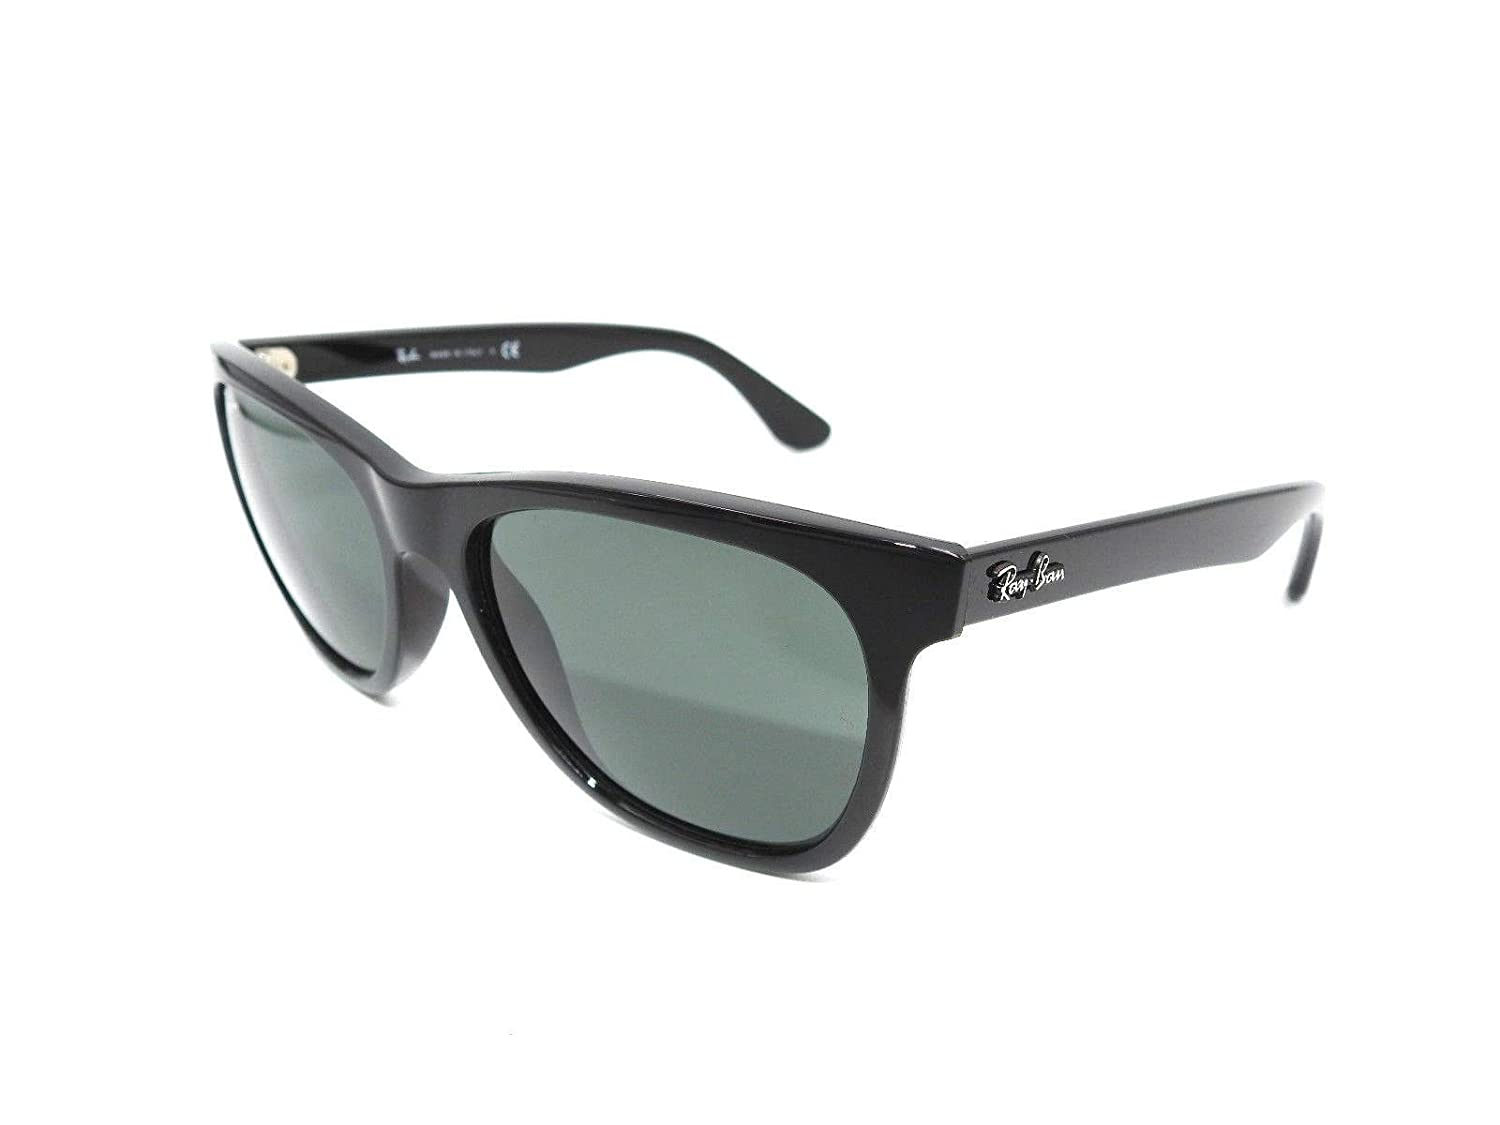 3a843dd75ee Amazon.com  Ray-Ban RB4184 - 601 71 Sunglasses